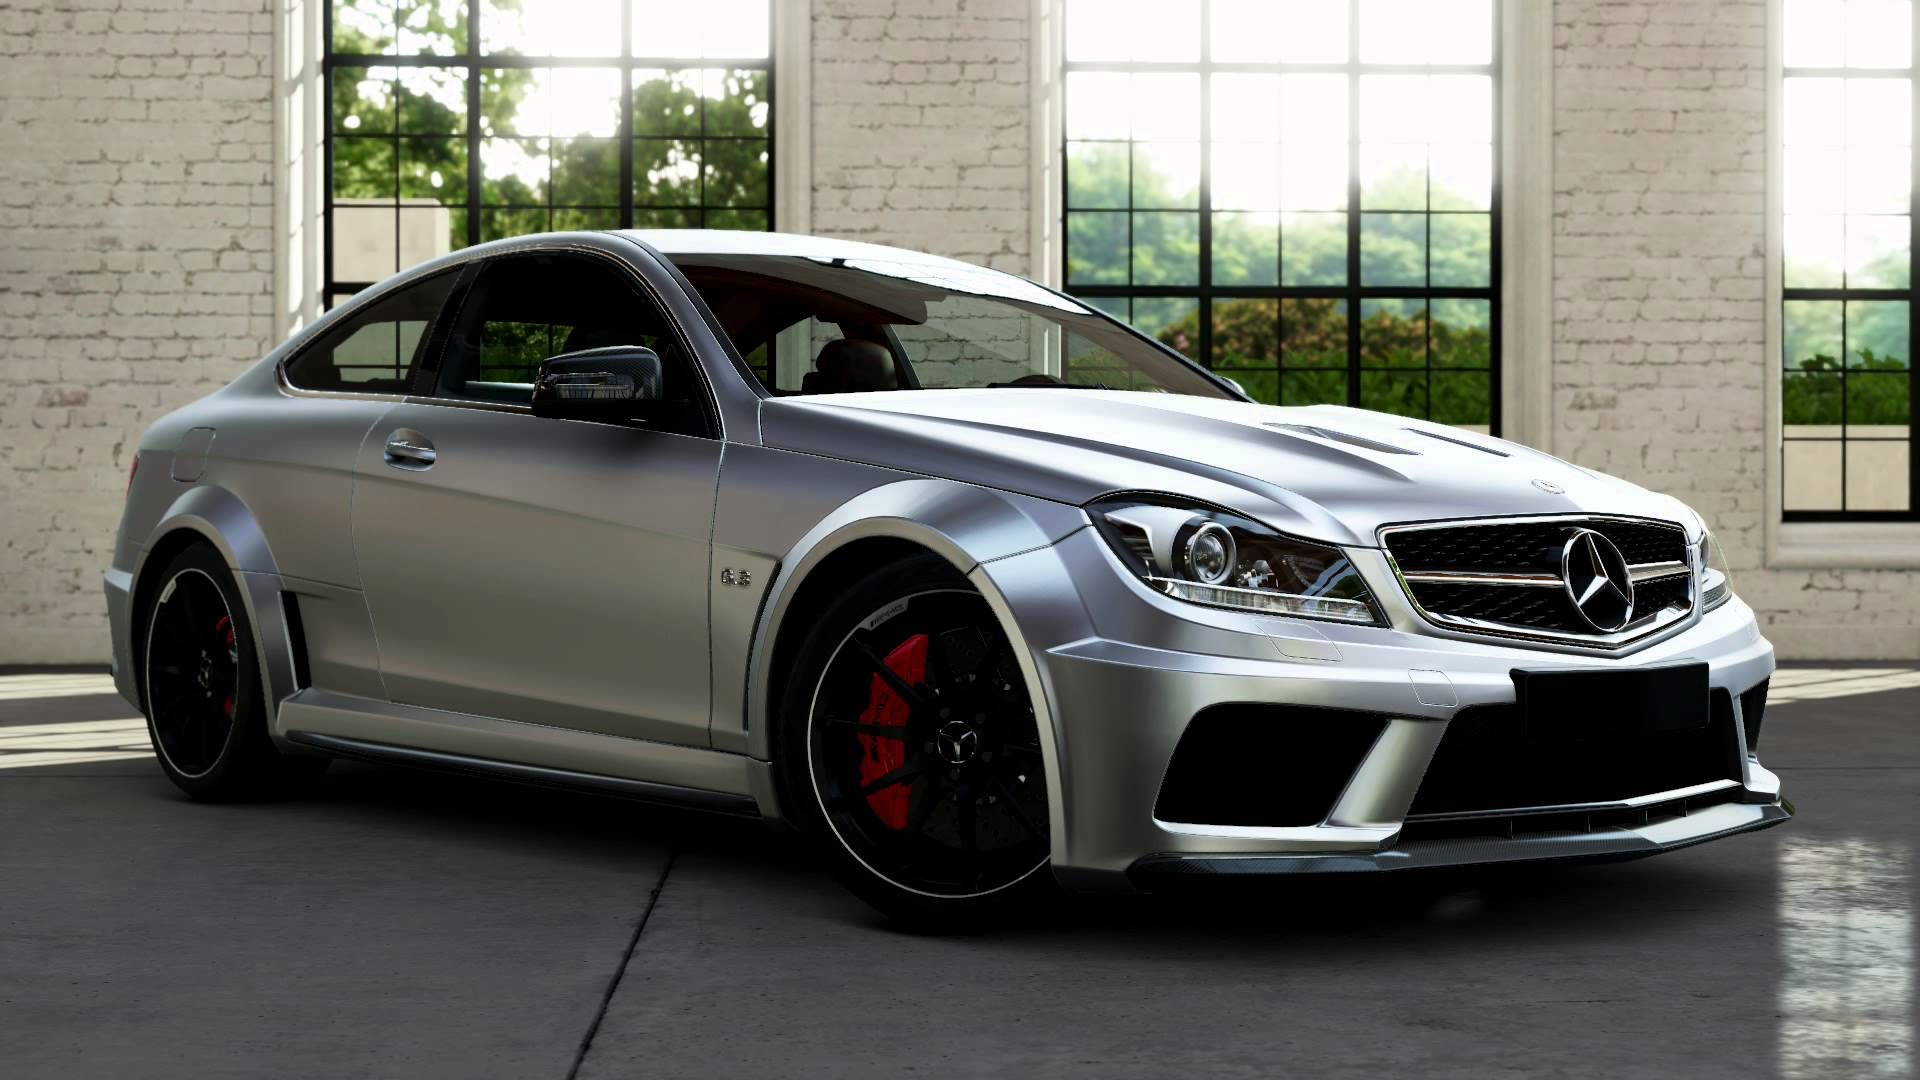 c63 amg black series brabus recherche google best. Black Bedroom Furniture Sets. Home Design Ideas